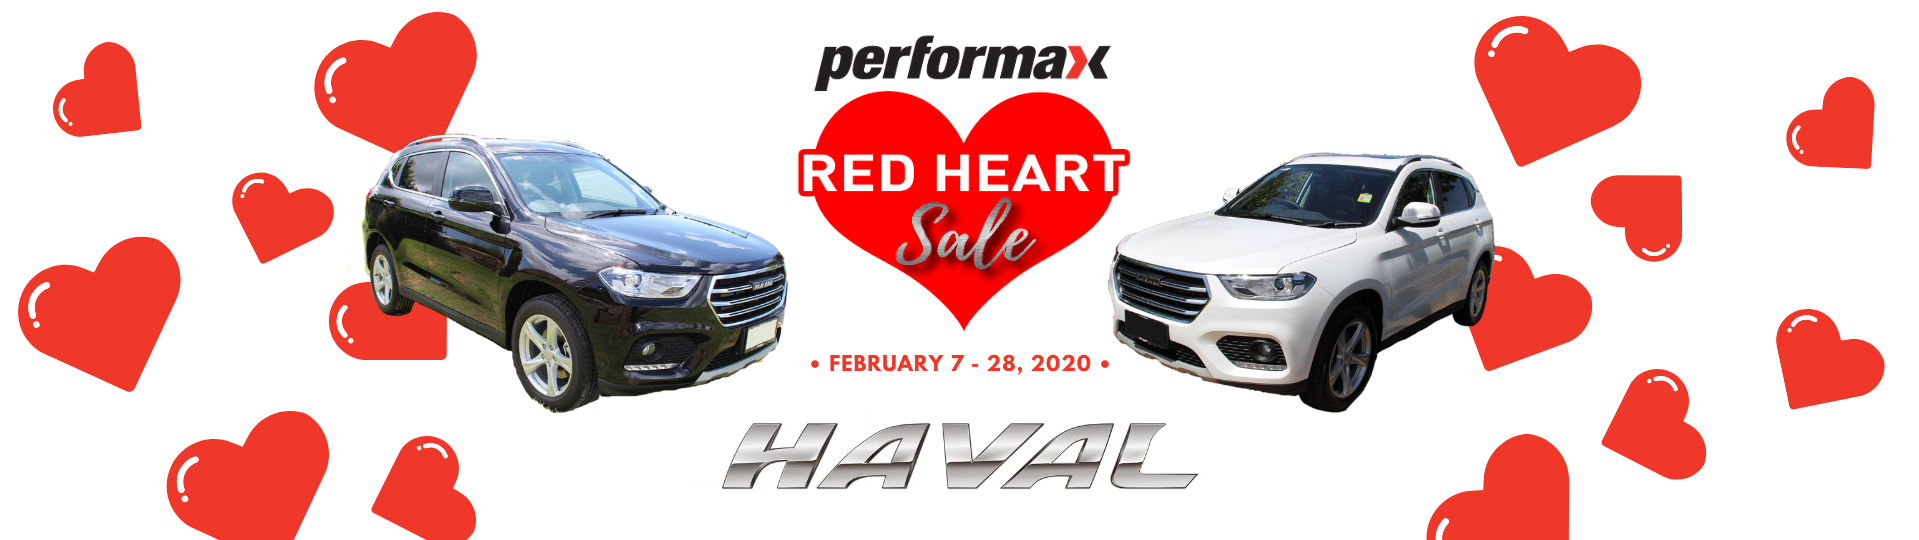 Performax Haval Red Hear Sale banner